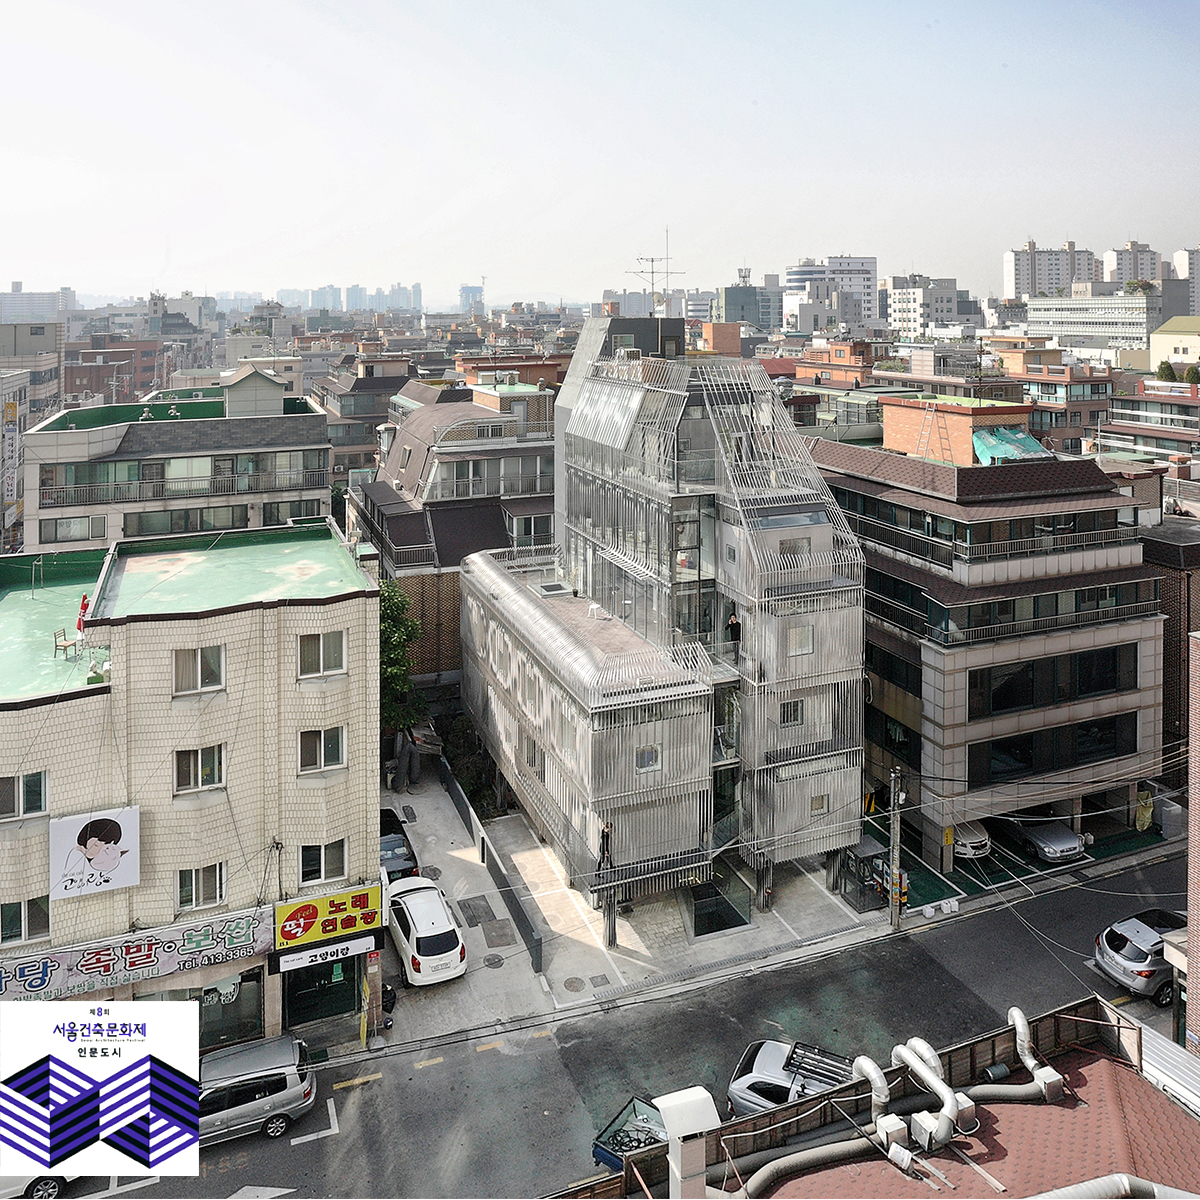 Aerial view of Songpa Housing with Seoul's urban context